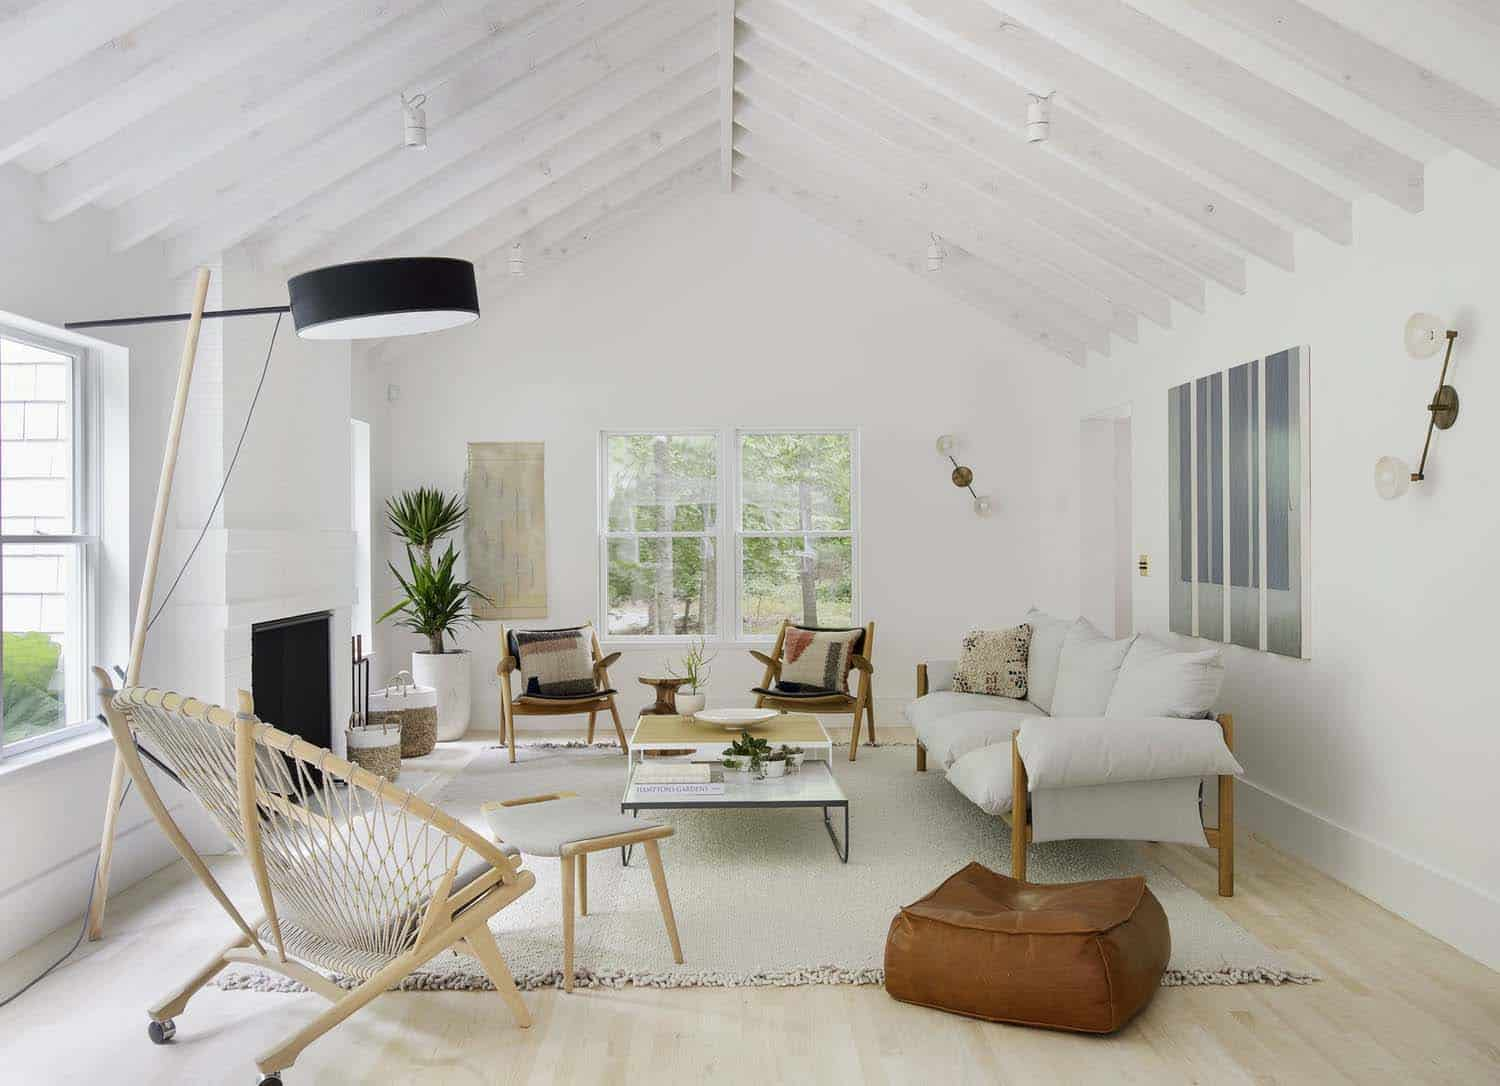 Scandinavian-Style Beach Retreat-Jessica Helgerson Interior Design-01-1 Kindesign